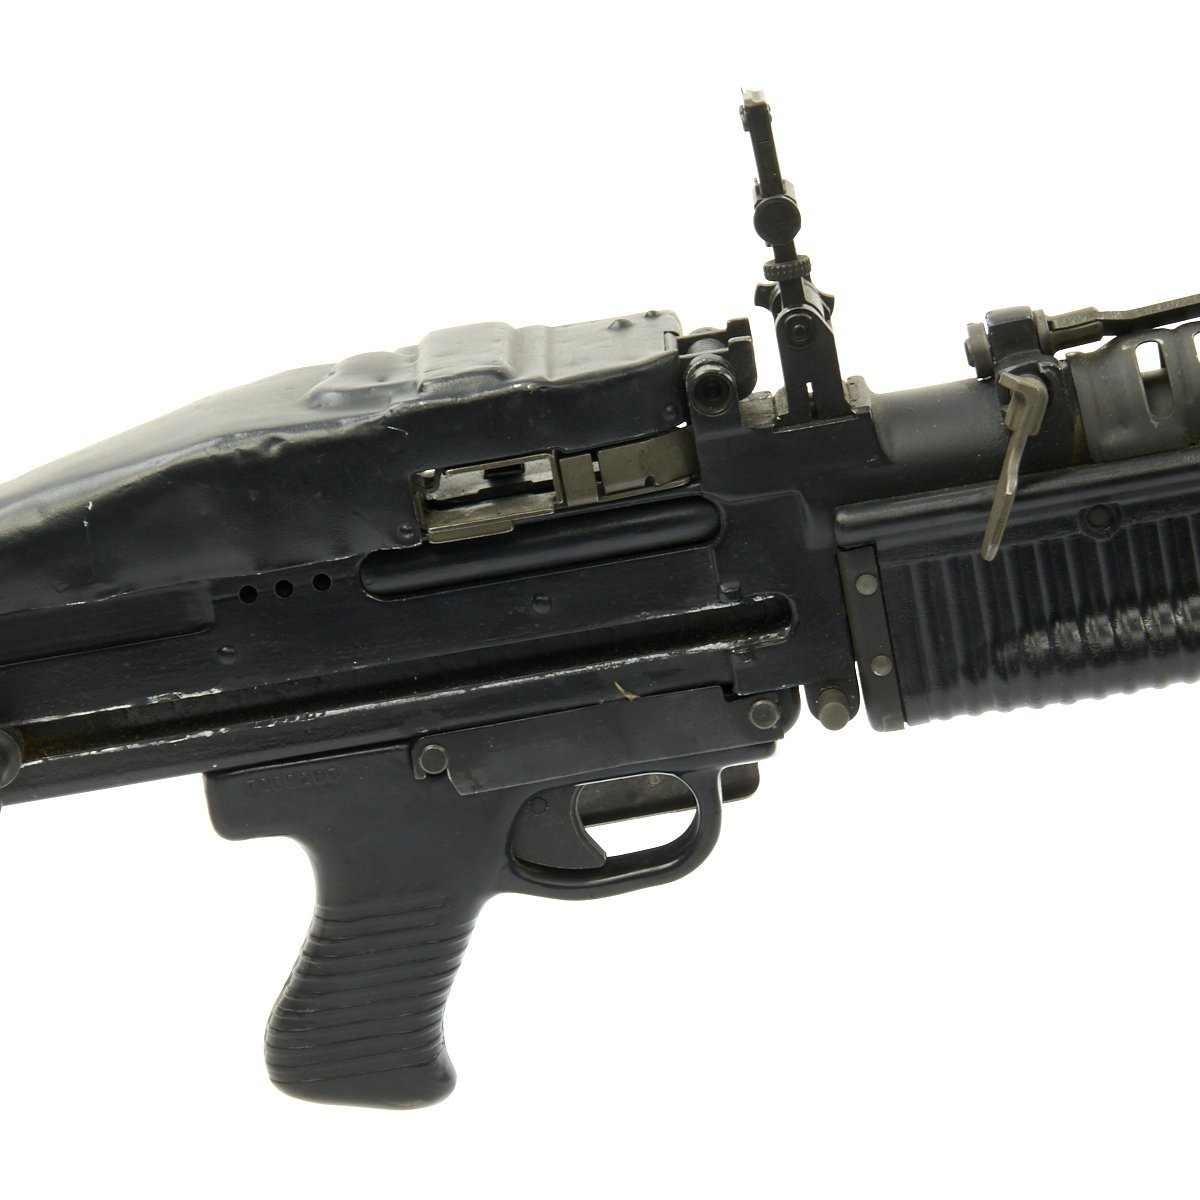 Original U S  Vietnam War M60 Display Machine Gun - Built